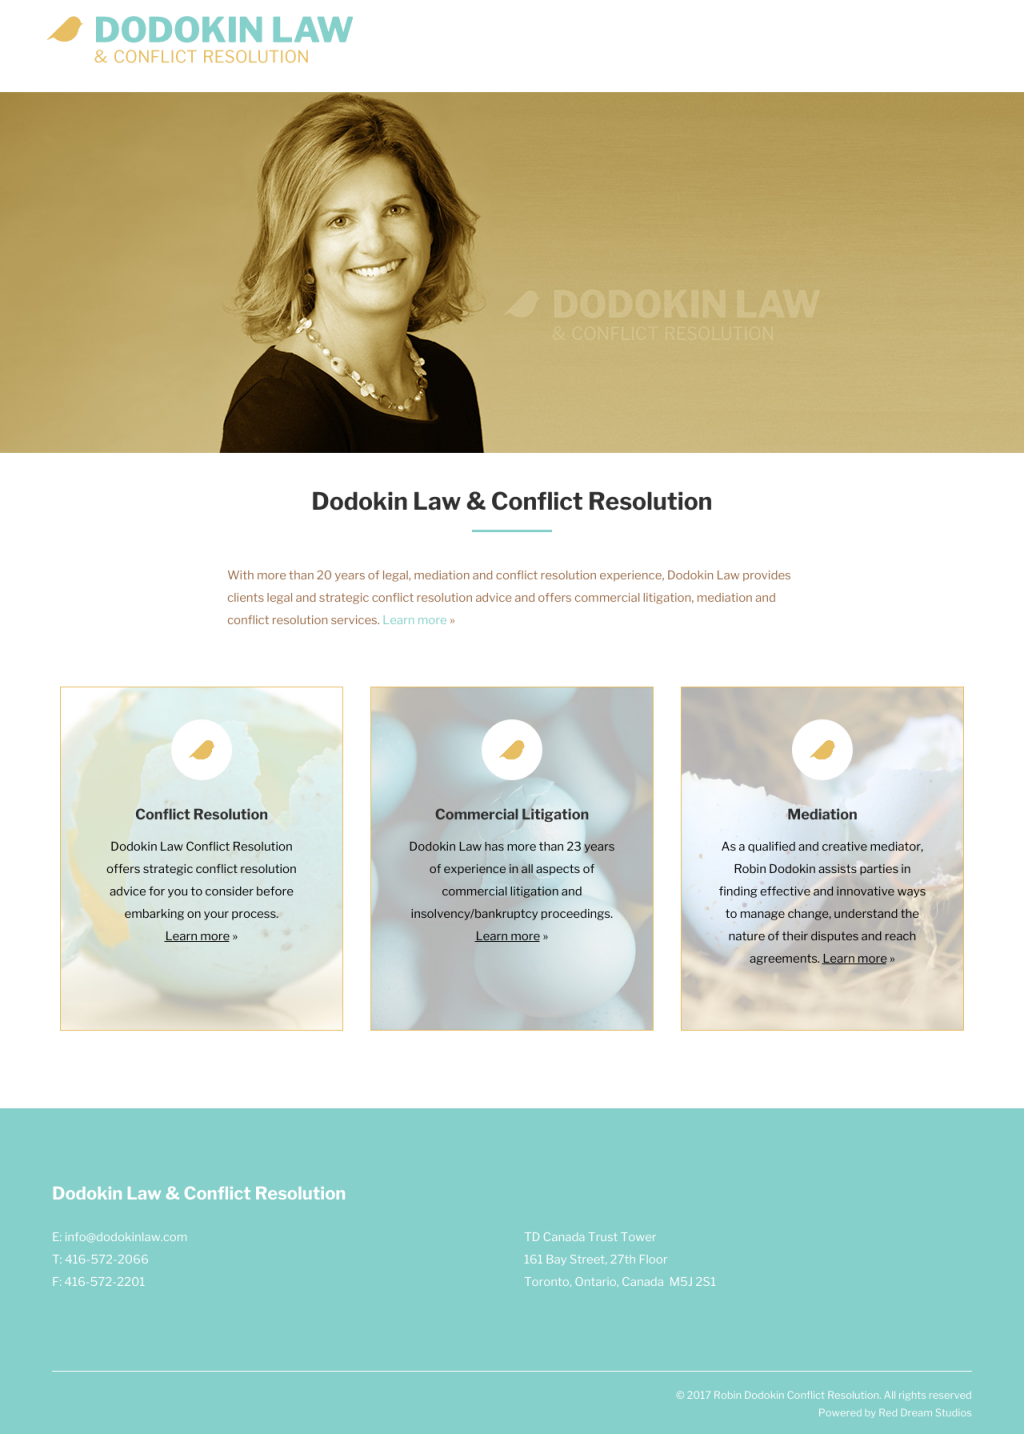 Dodokin Conflict Resolution Website